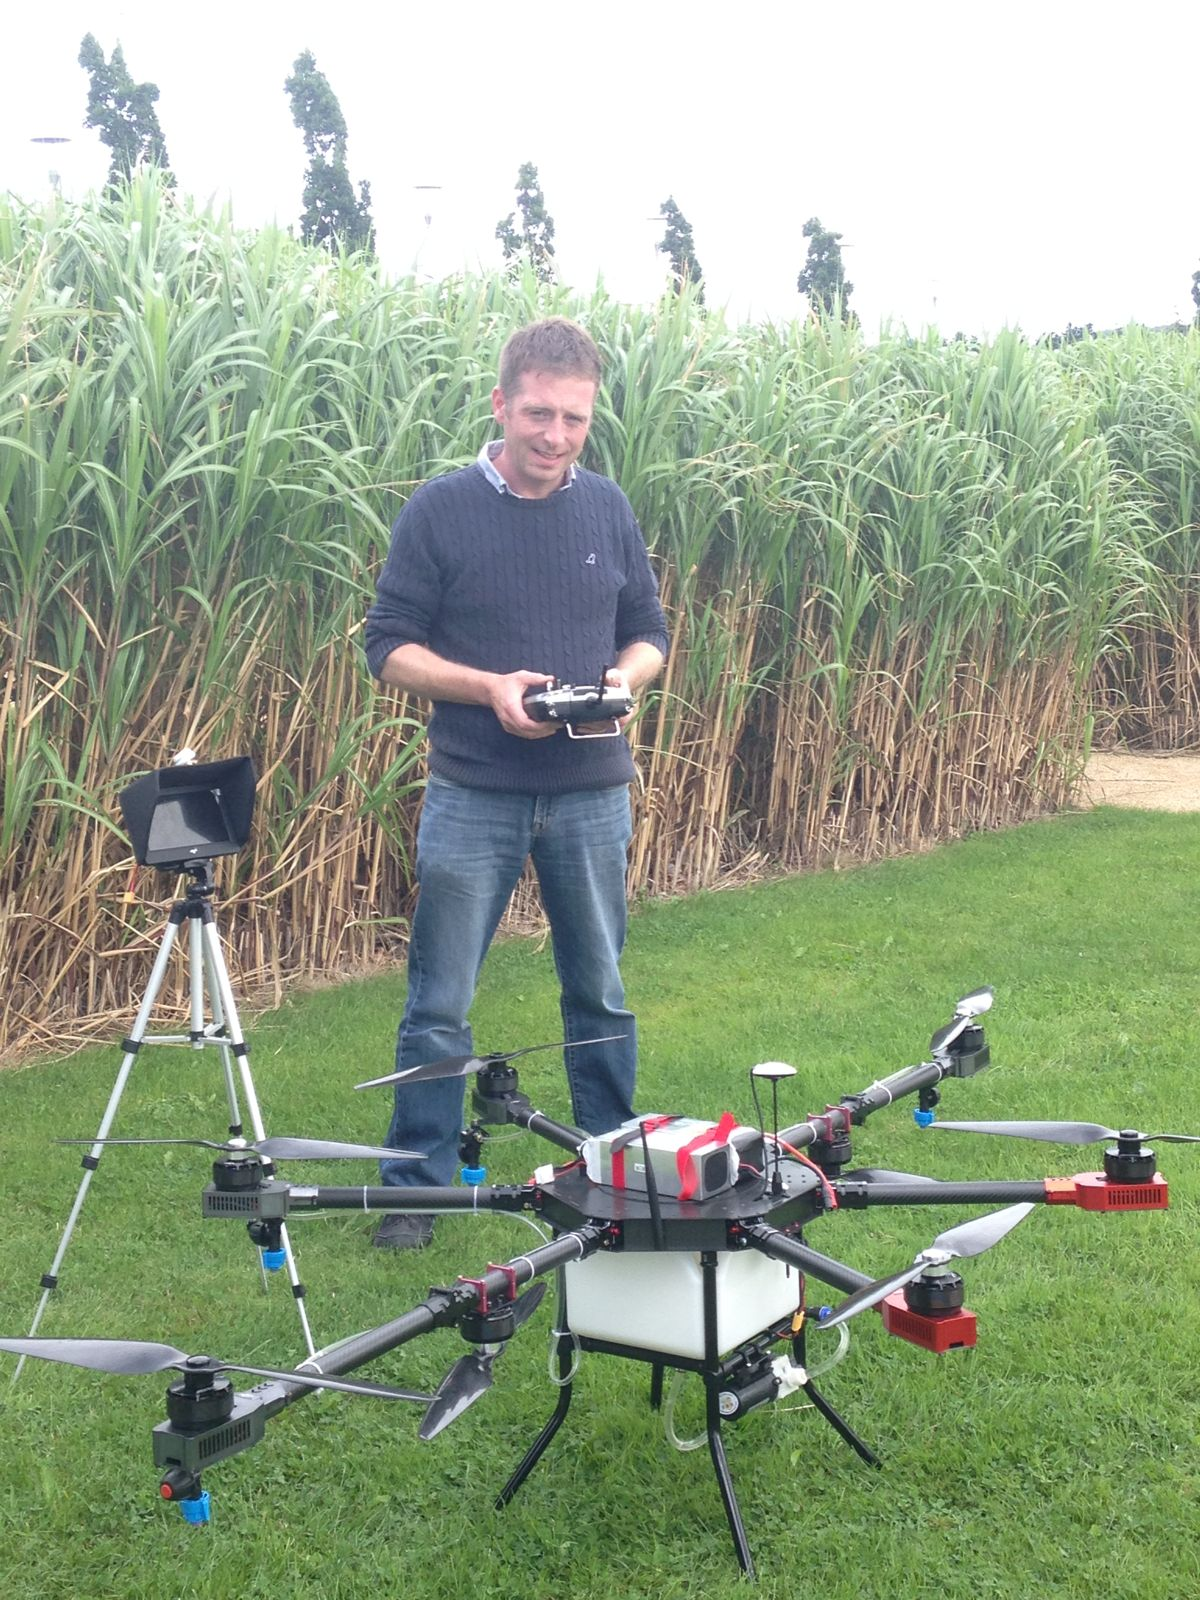 Ian Kiely organizer of Drone Tech Expo working with crop spraying drone